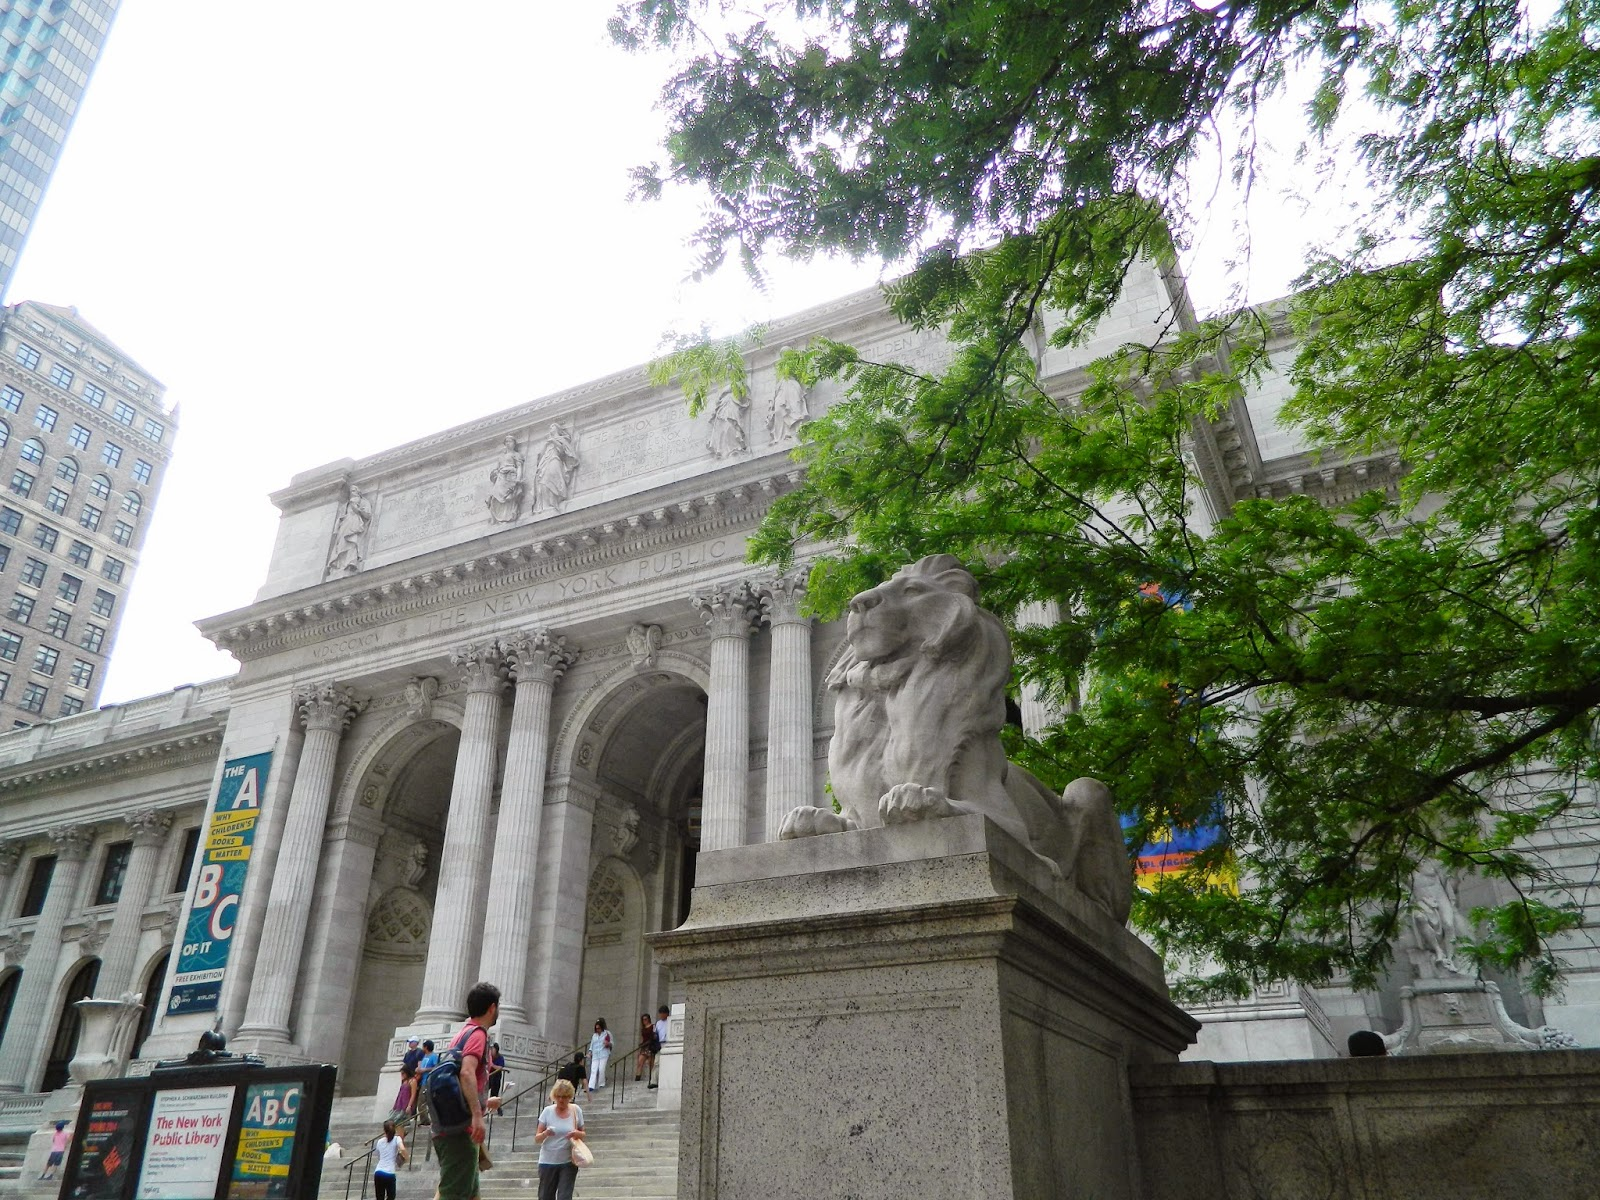 new york city Public Library outside architecture lion trees pillars